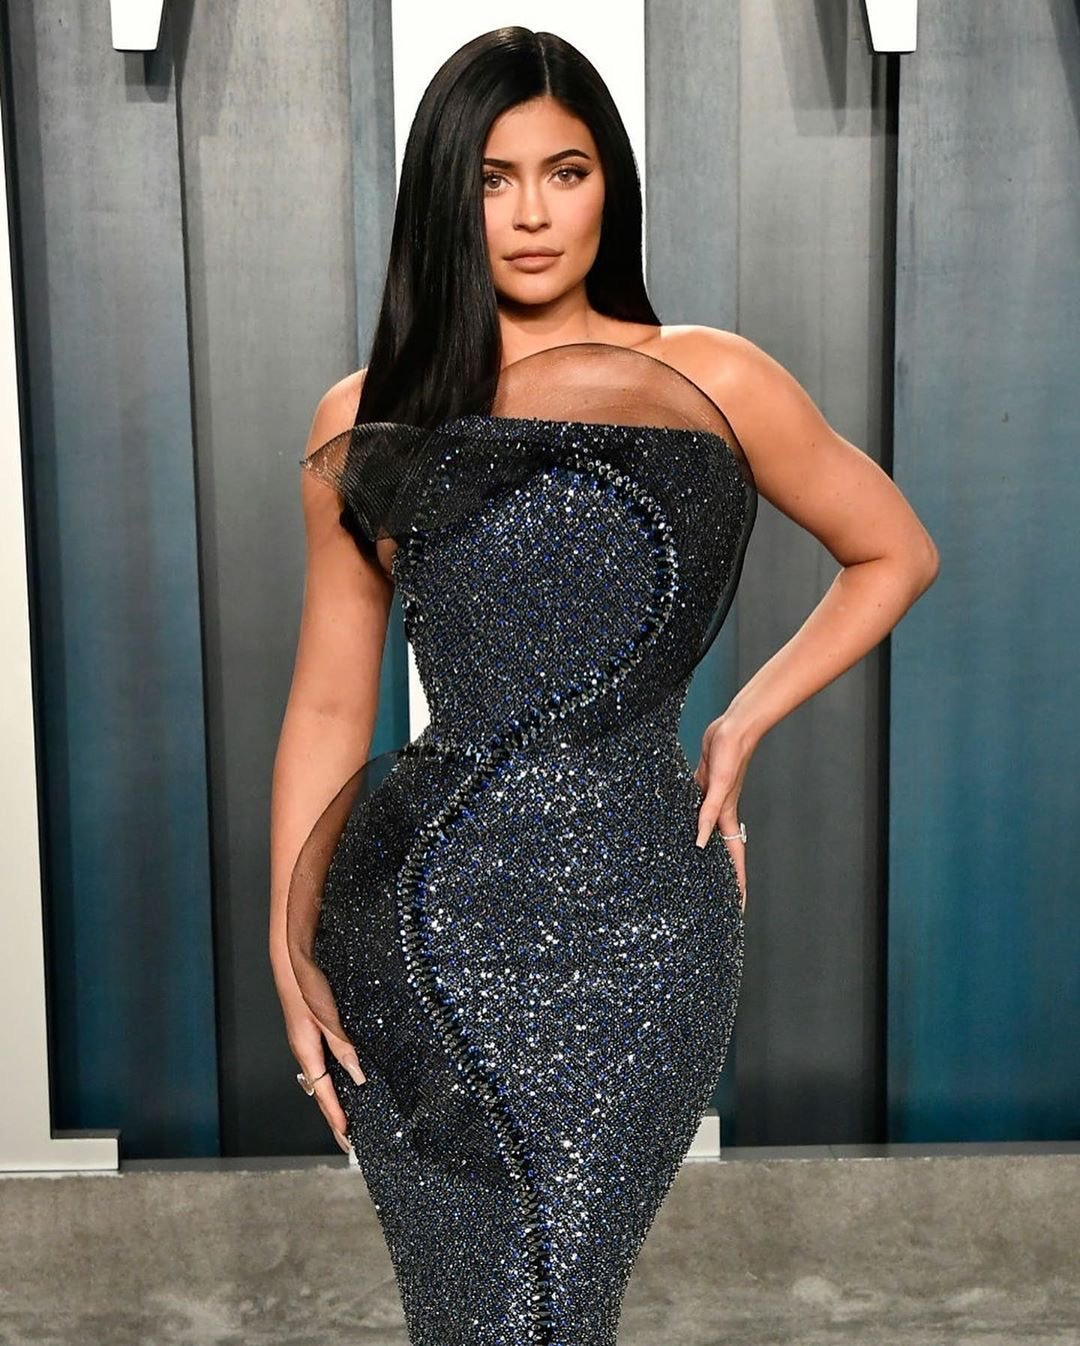 Kylie Jenner puts her billion dollar curves on show at the 2020 Vanity Fair Oscars Party